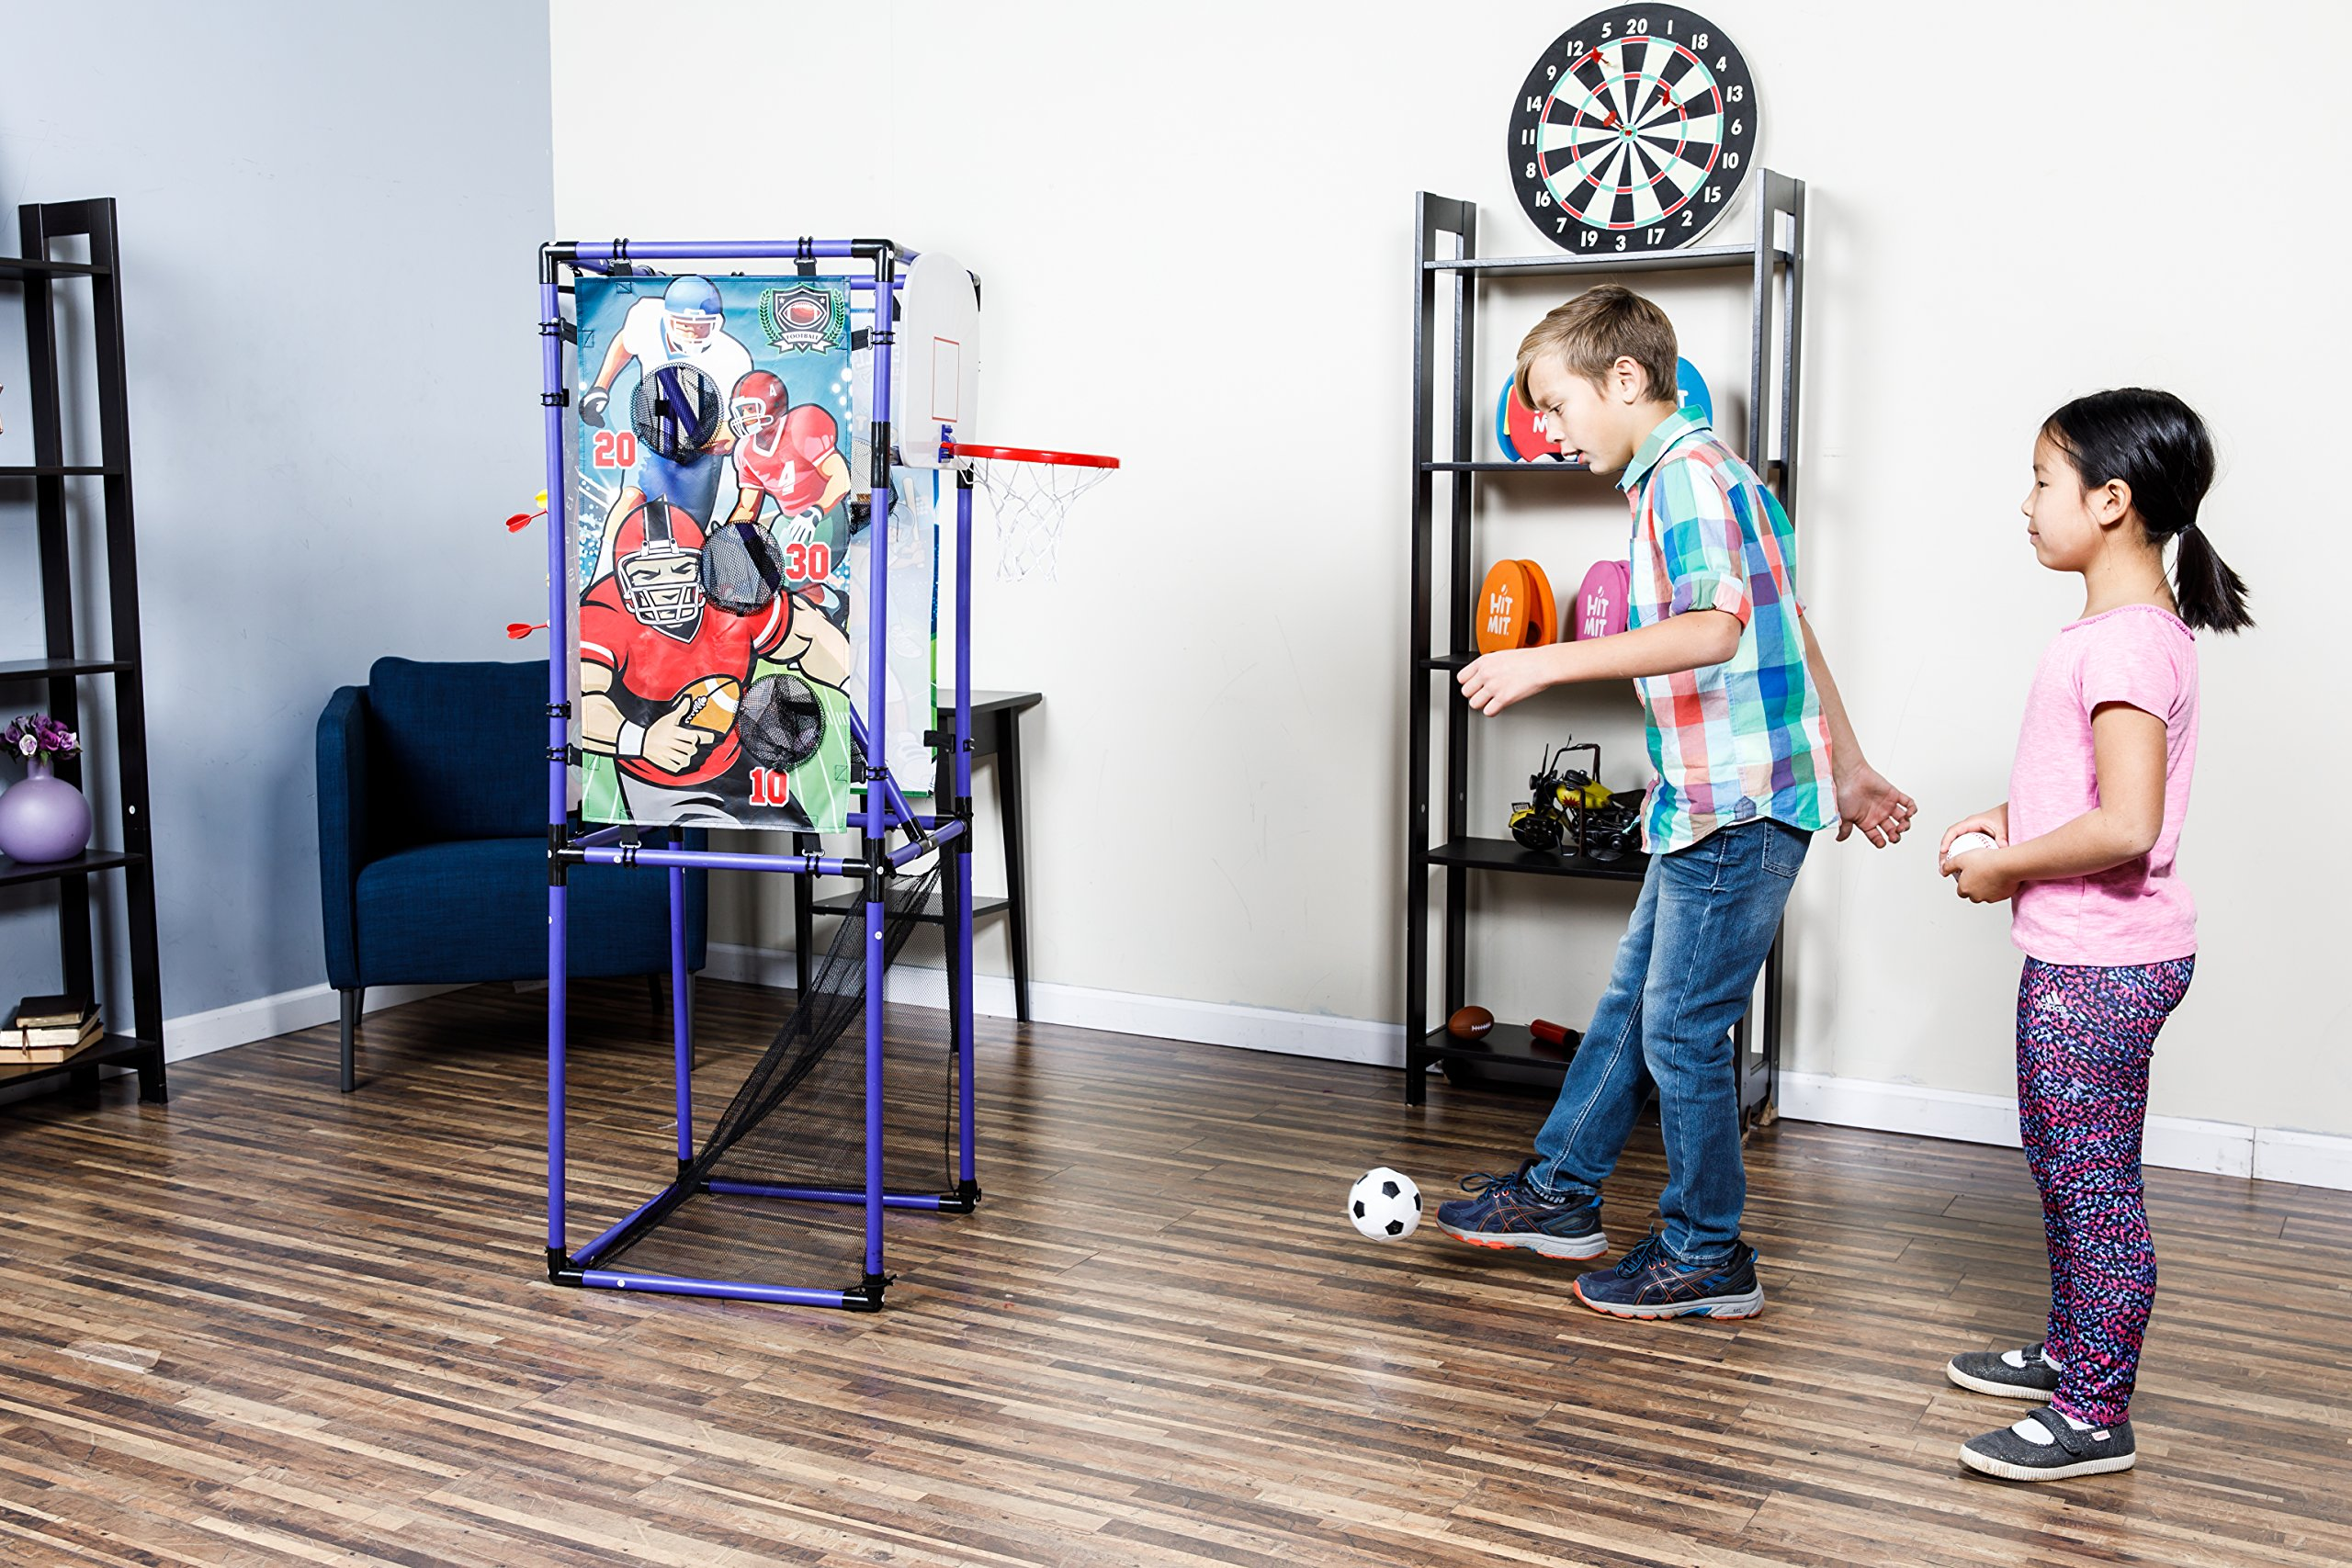 Sport Squad 5-in-1 Multi-Sport Kid's Game Set – Features Baseball, Basketball, Football, Soccer, Darts – Great for Indoor and Outdoor Play by Sport Squad (Image #7)